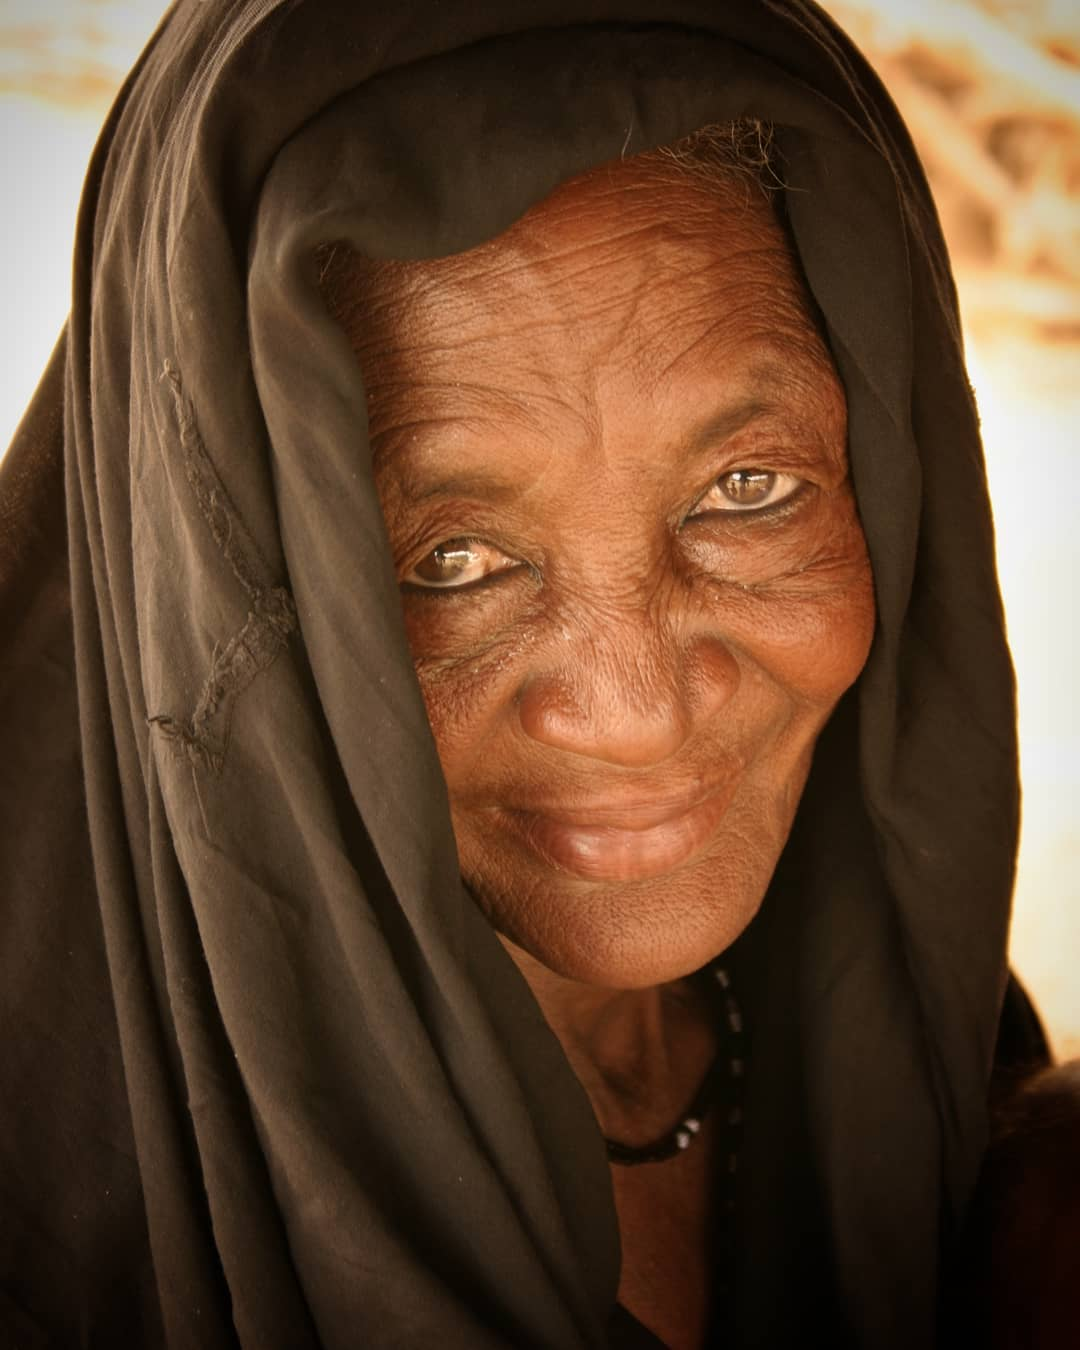 Touareg grandmother